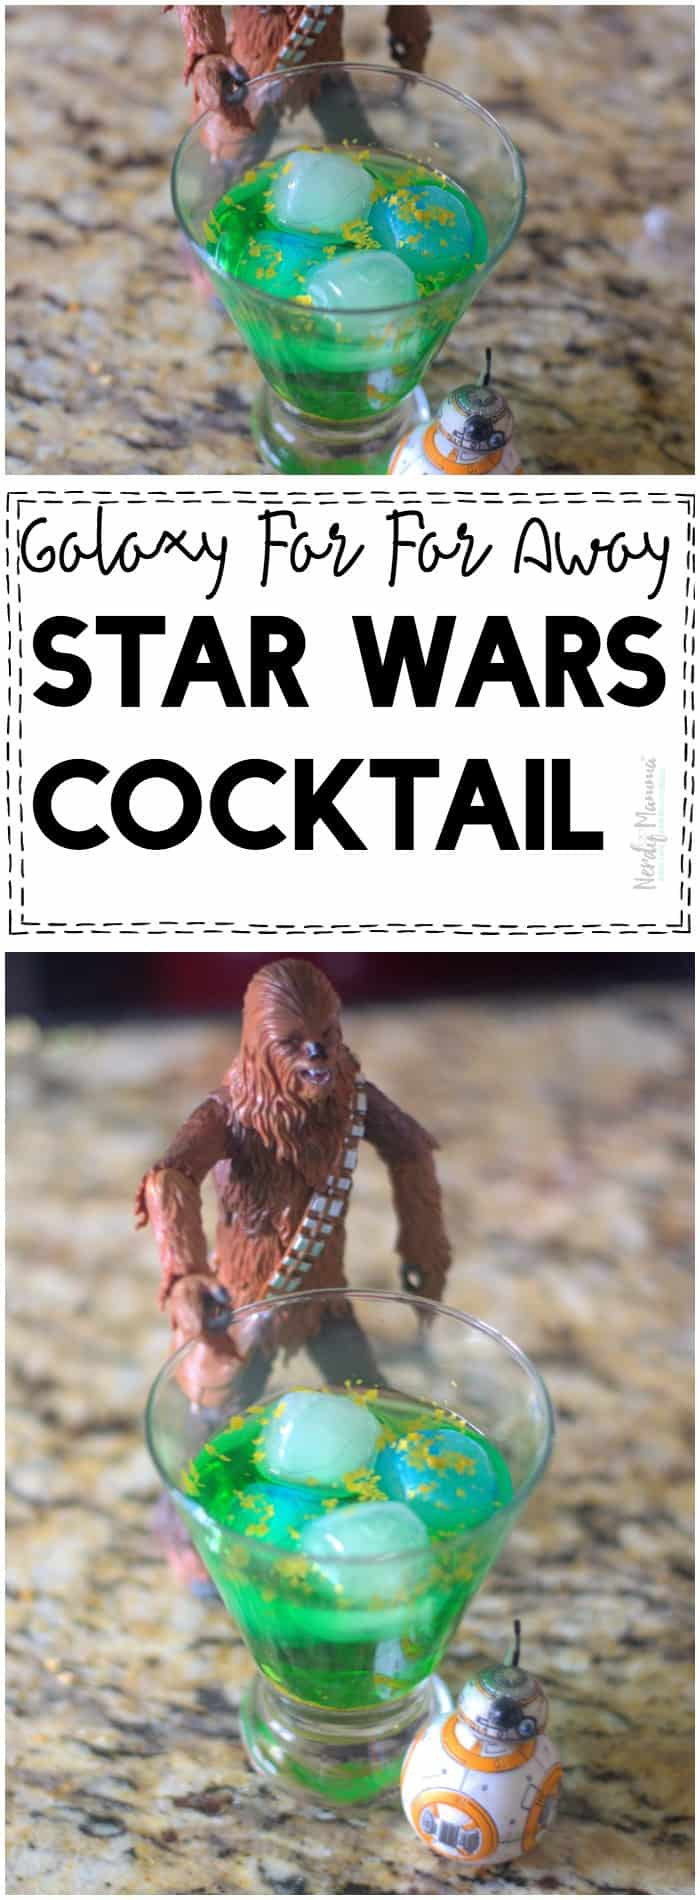 OMG You have GOT to try this Galaxy Far Far Away Star Wars Cocktail!